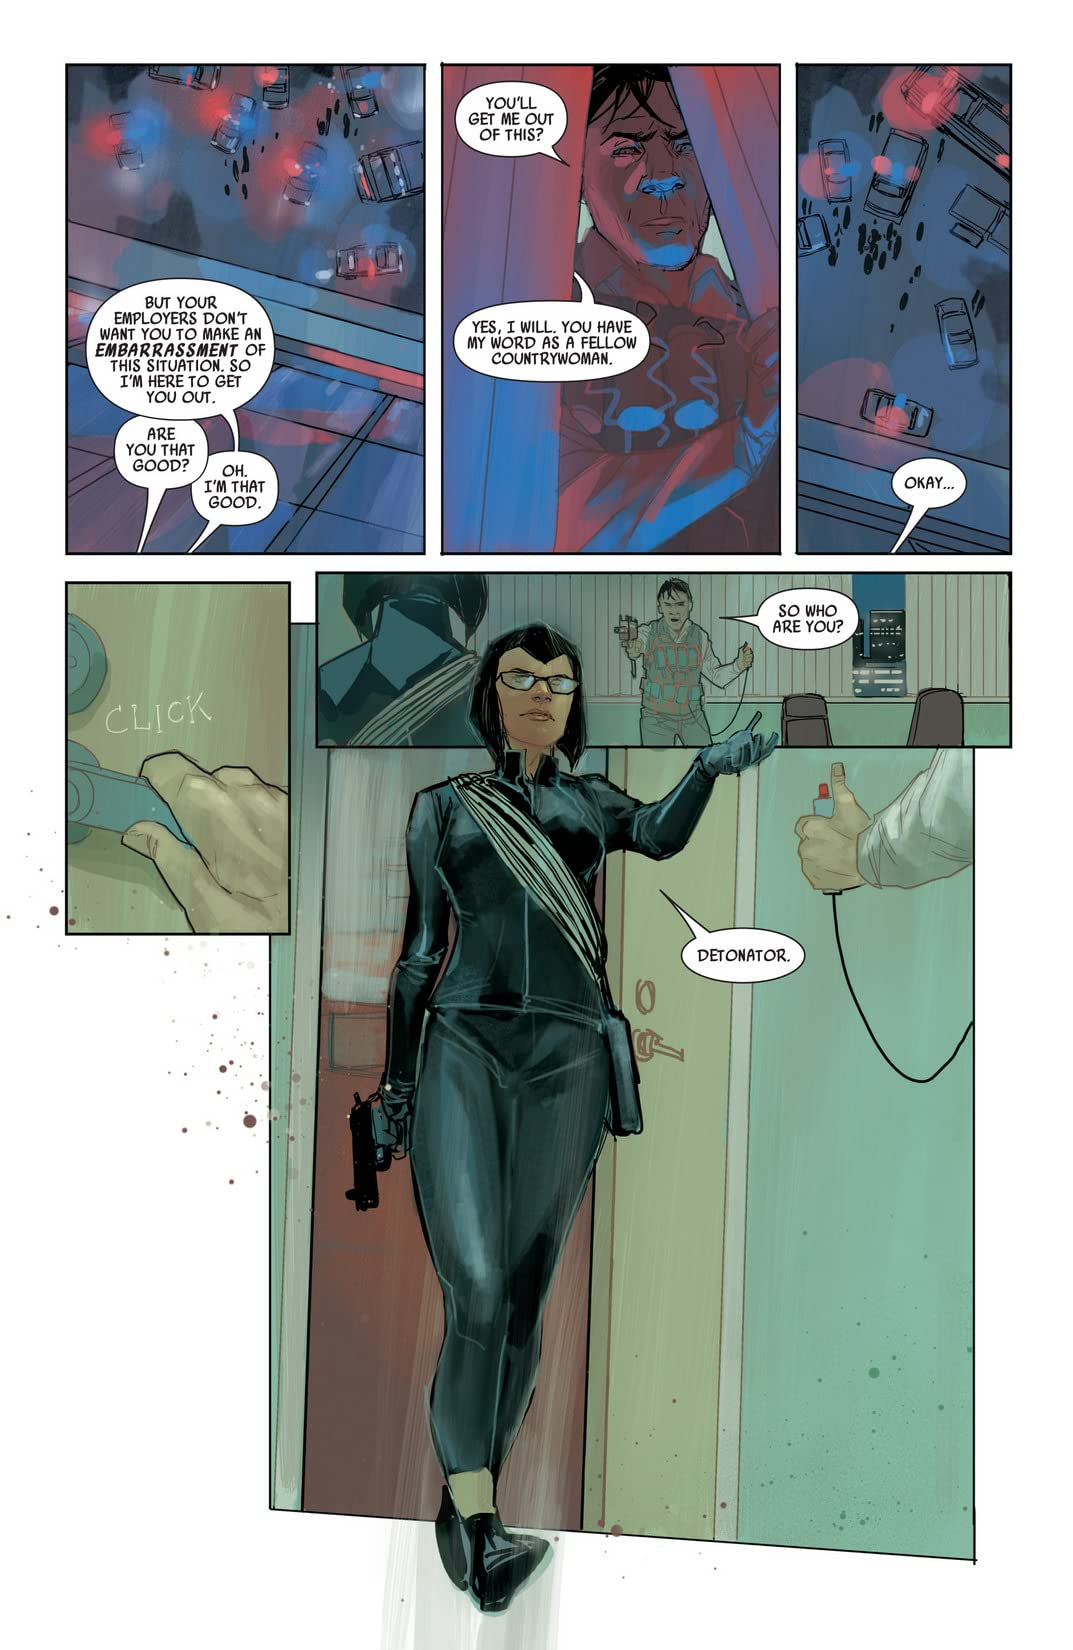 Black Widow Vol. 1: The Finely Woven Thread